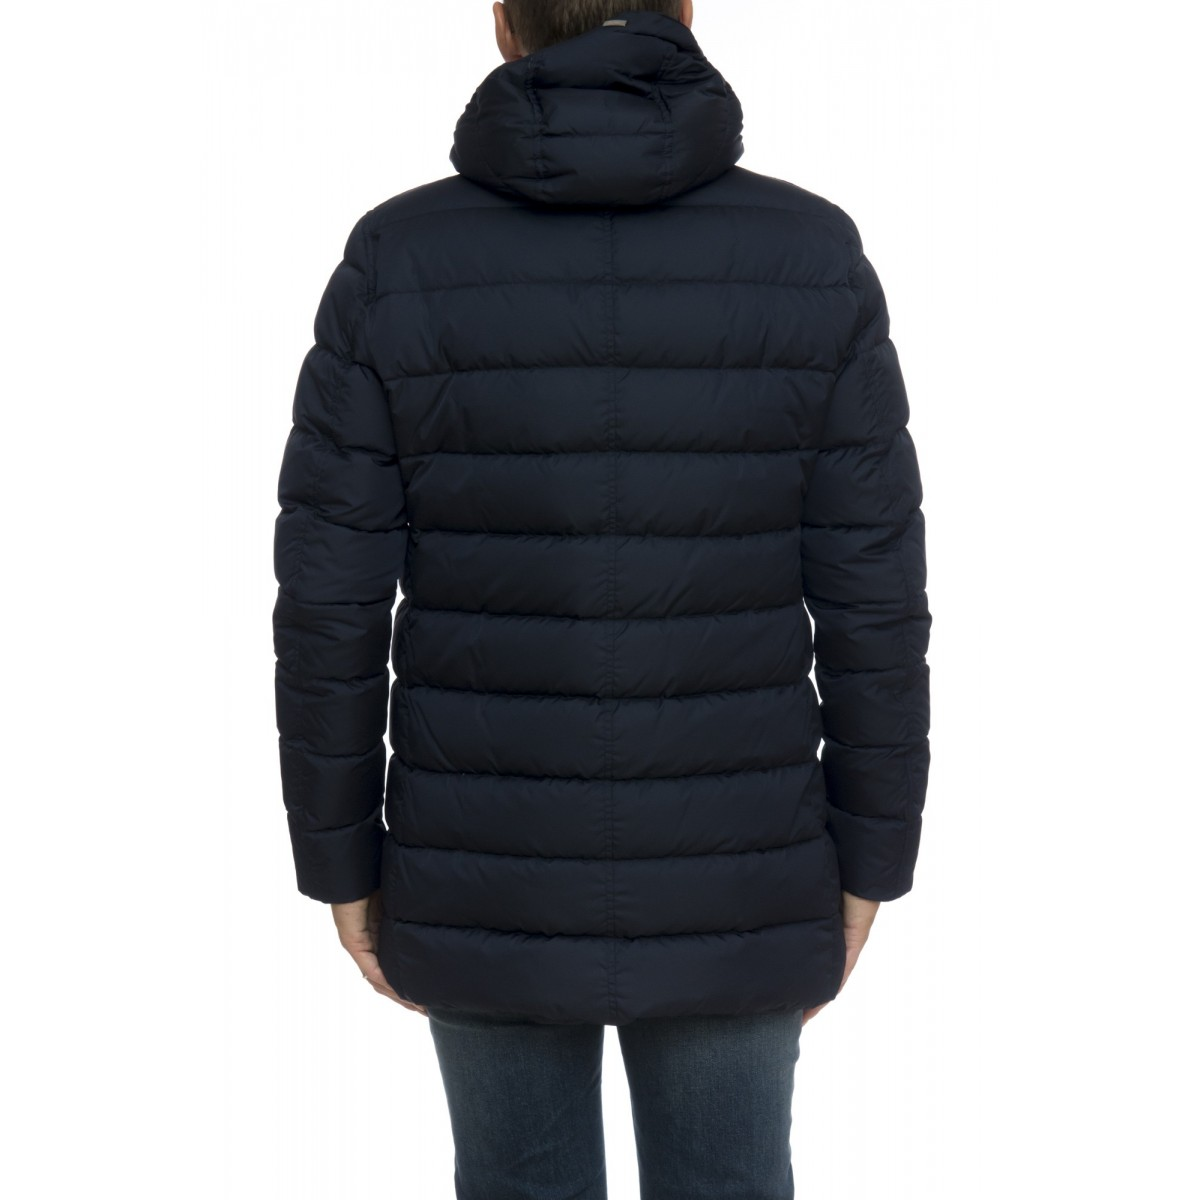 Polar-tech Down Jacket  - PI0462U 12004